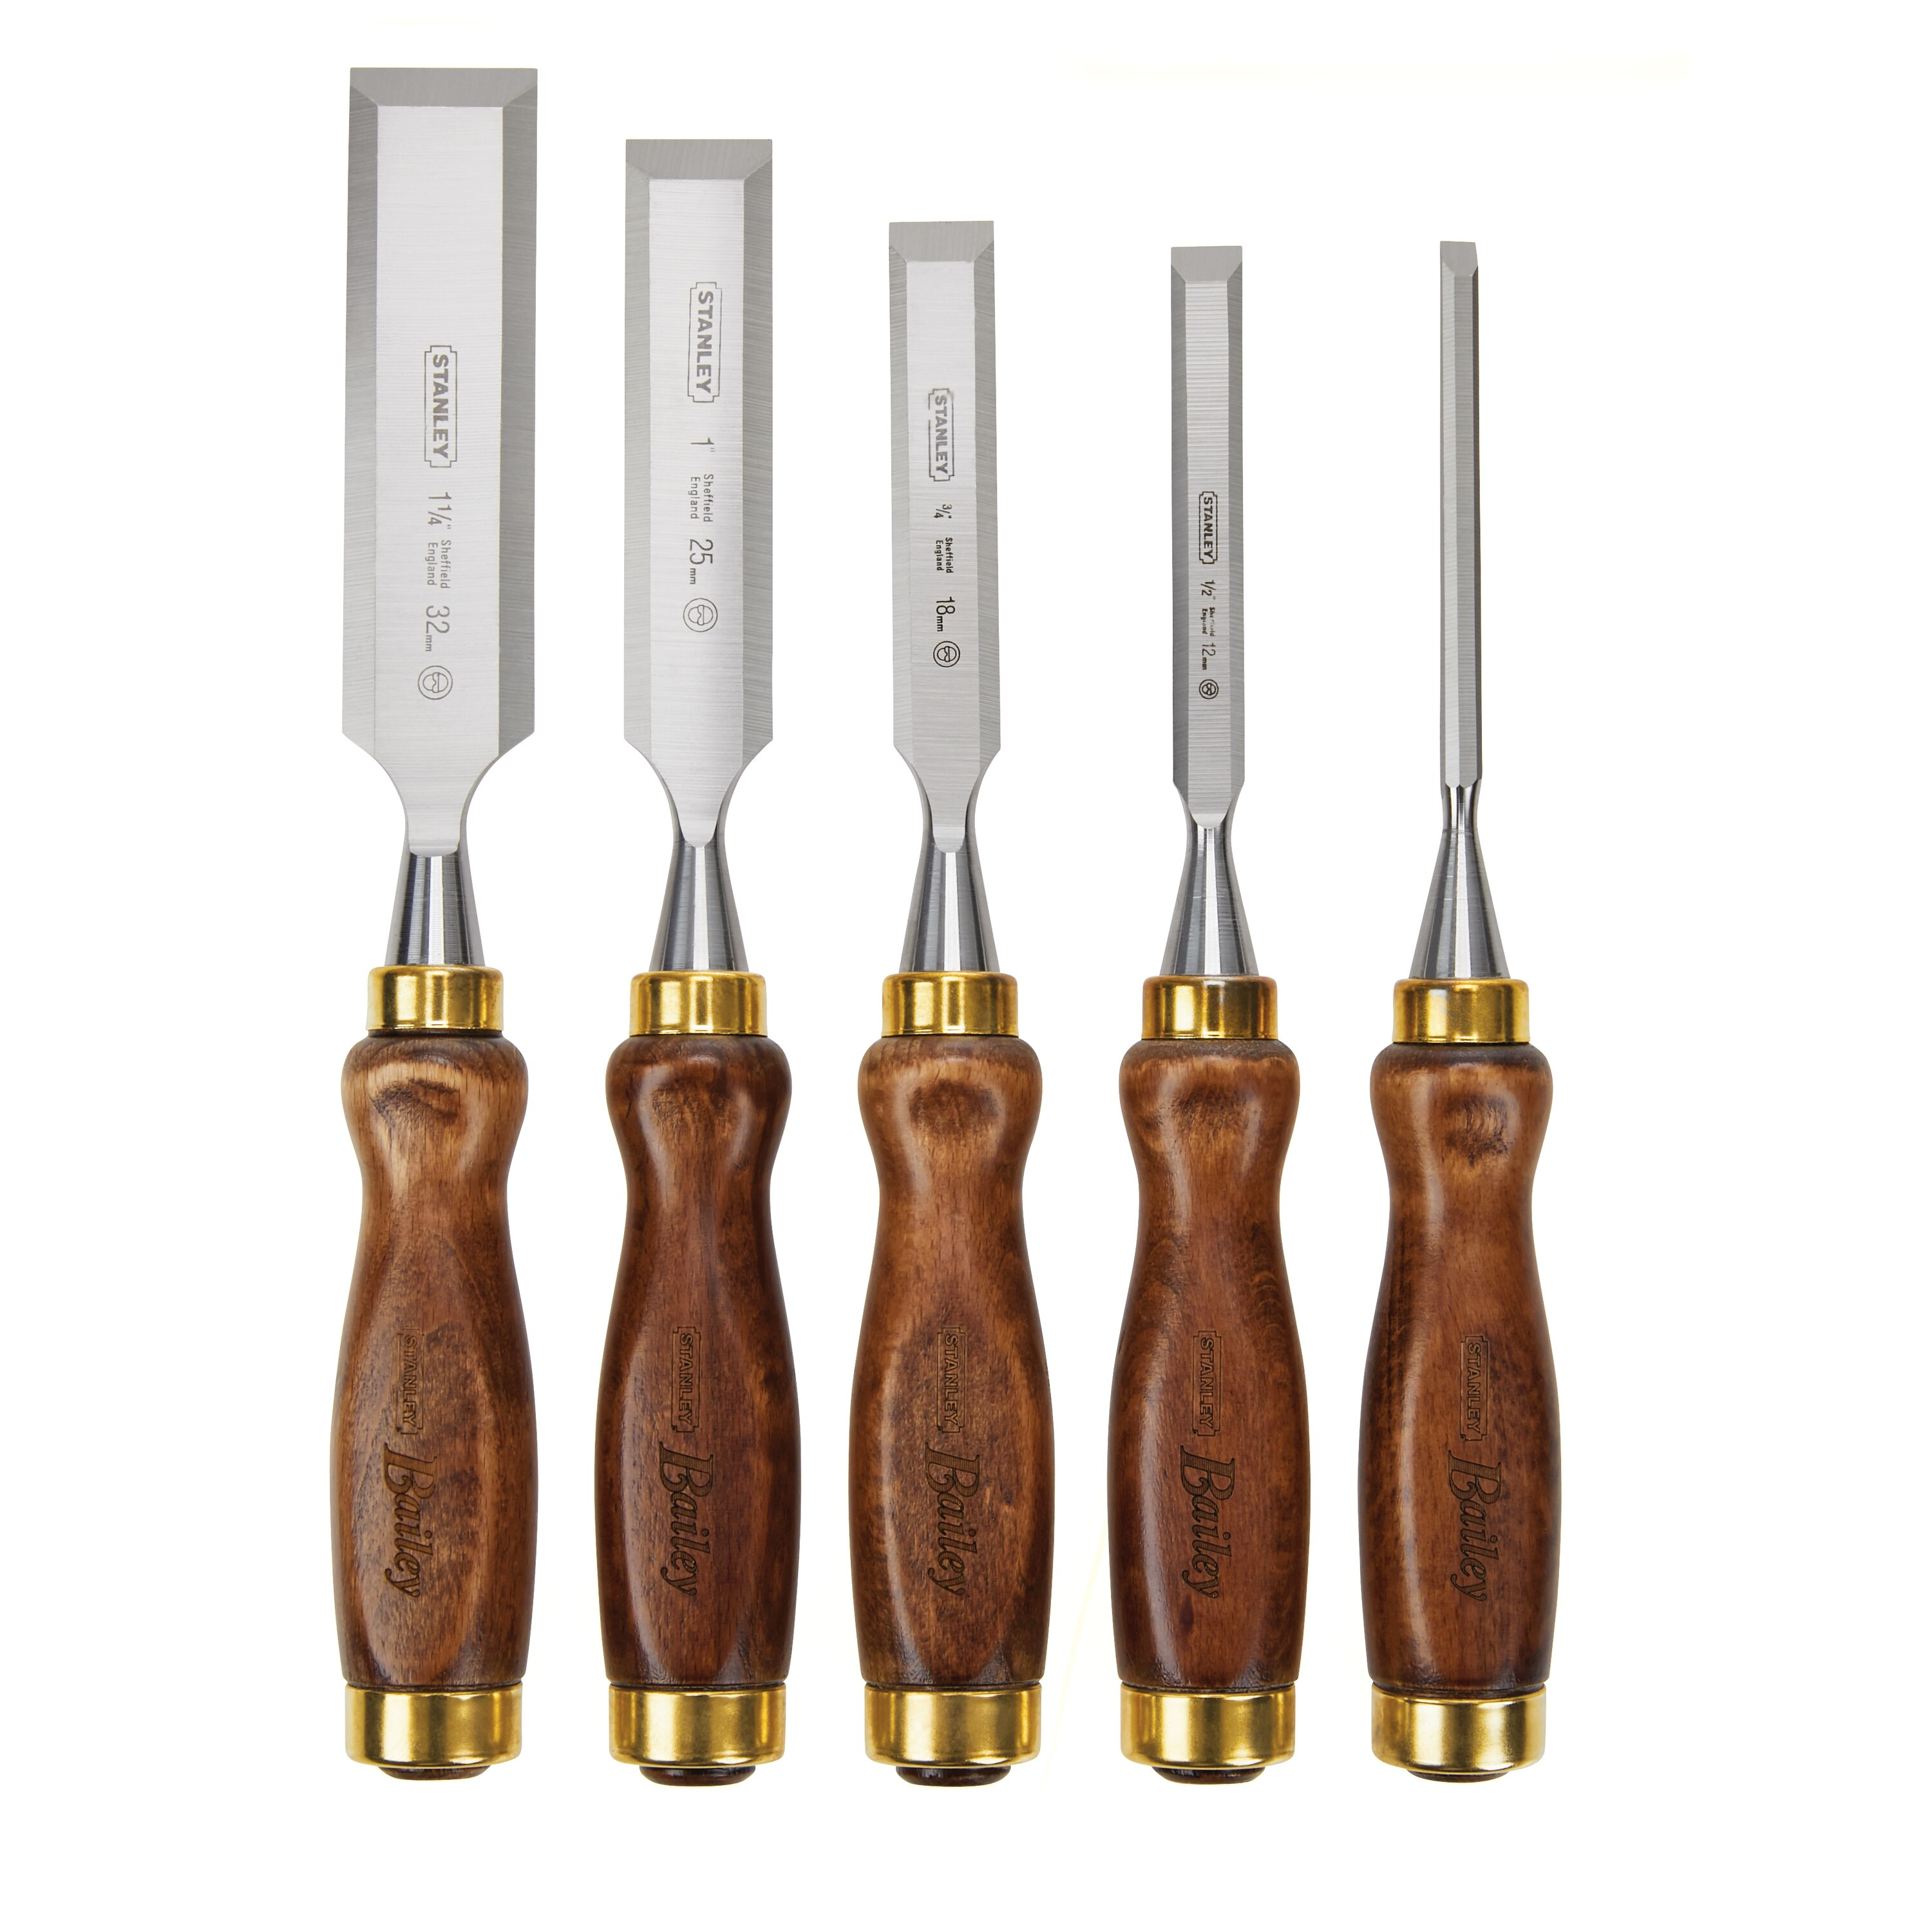 Stanley Tools - 5 pc Bailey Chisel Set with Leather Pouch - 16-401